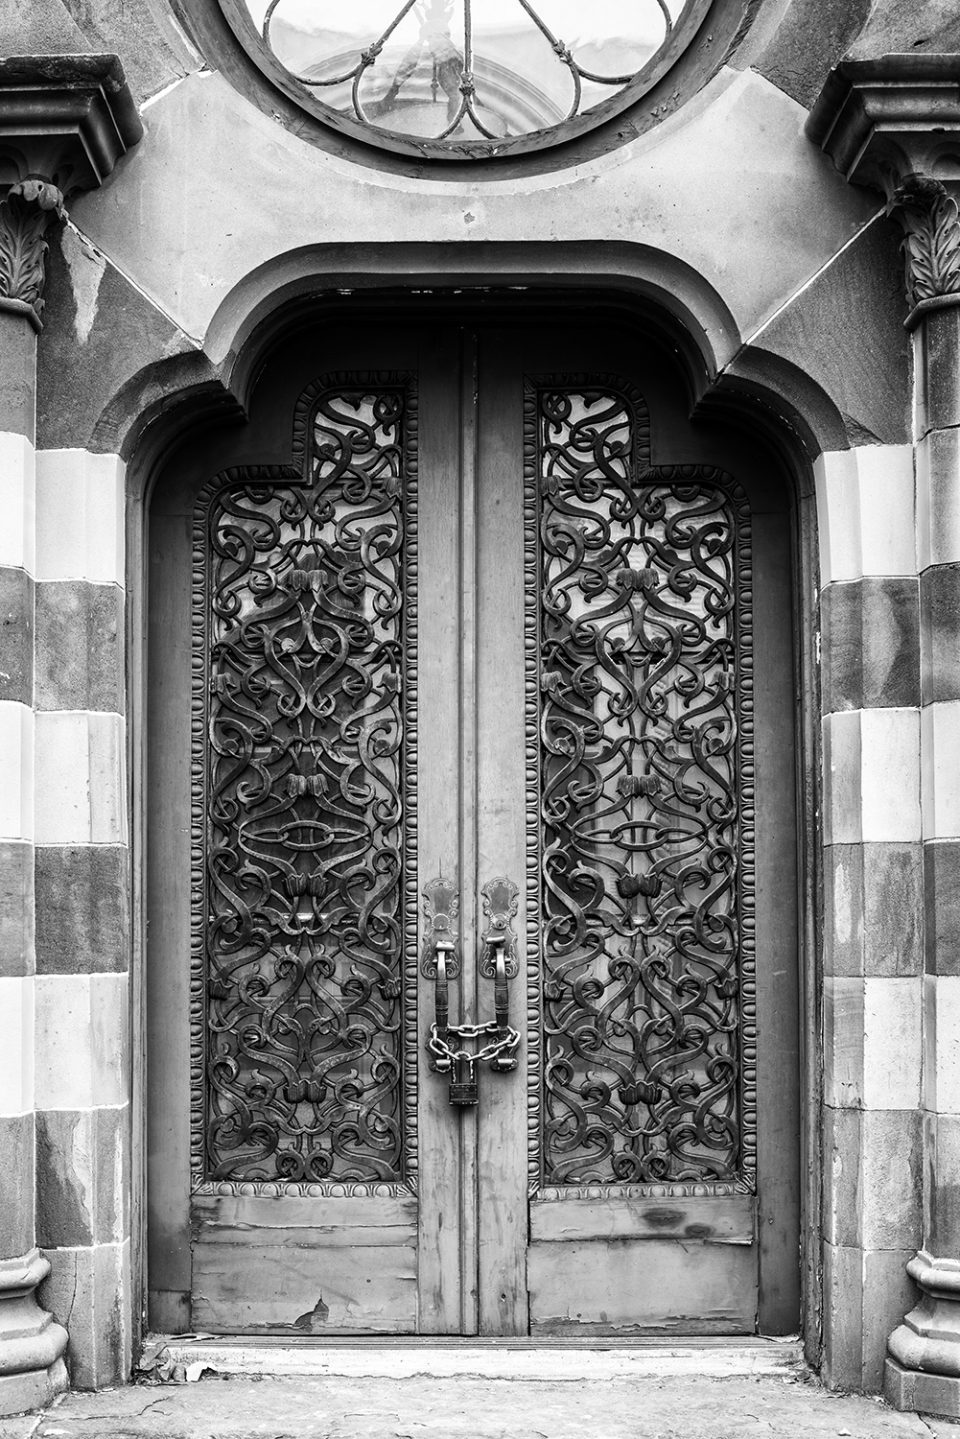 Front Doors of Old Farmers and Exchange Bank in Charleston, black and white photograph by Keith Dotson. Available in sizes up to 40 x 60 inches. Buy a fine art print here.